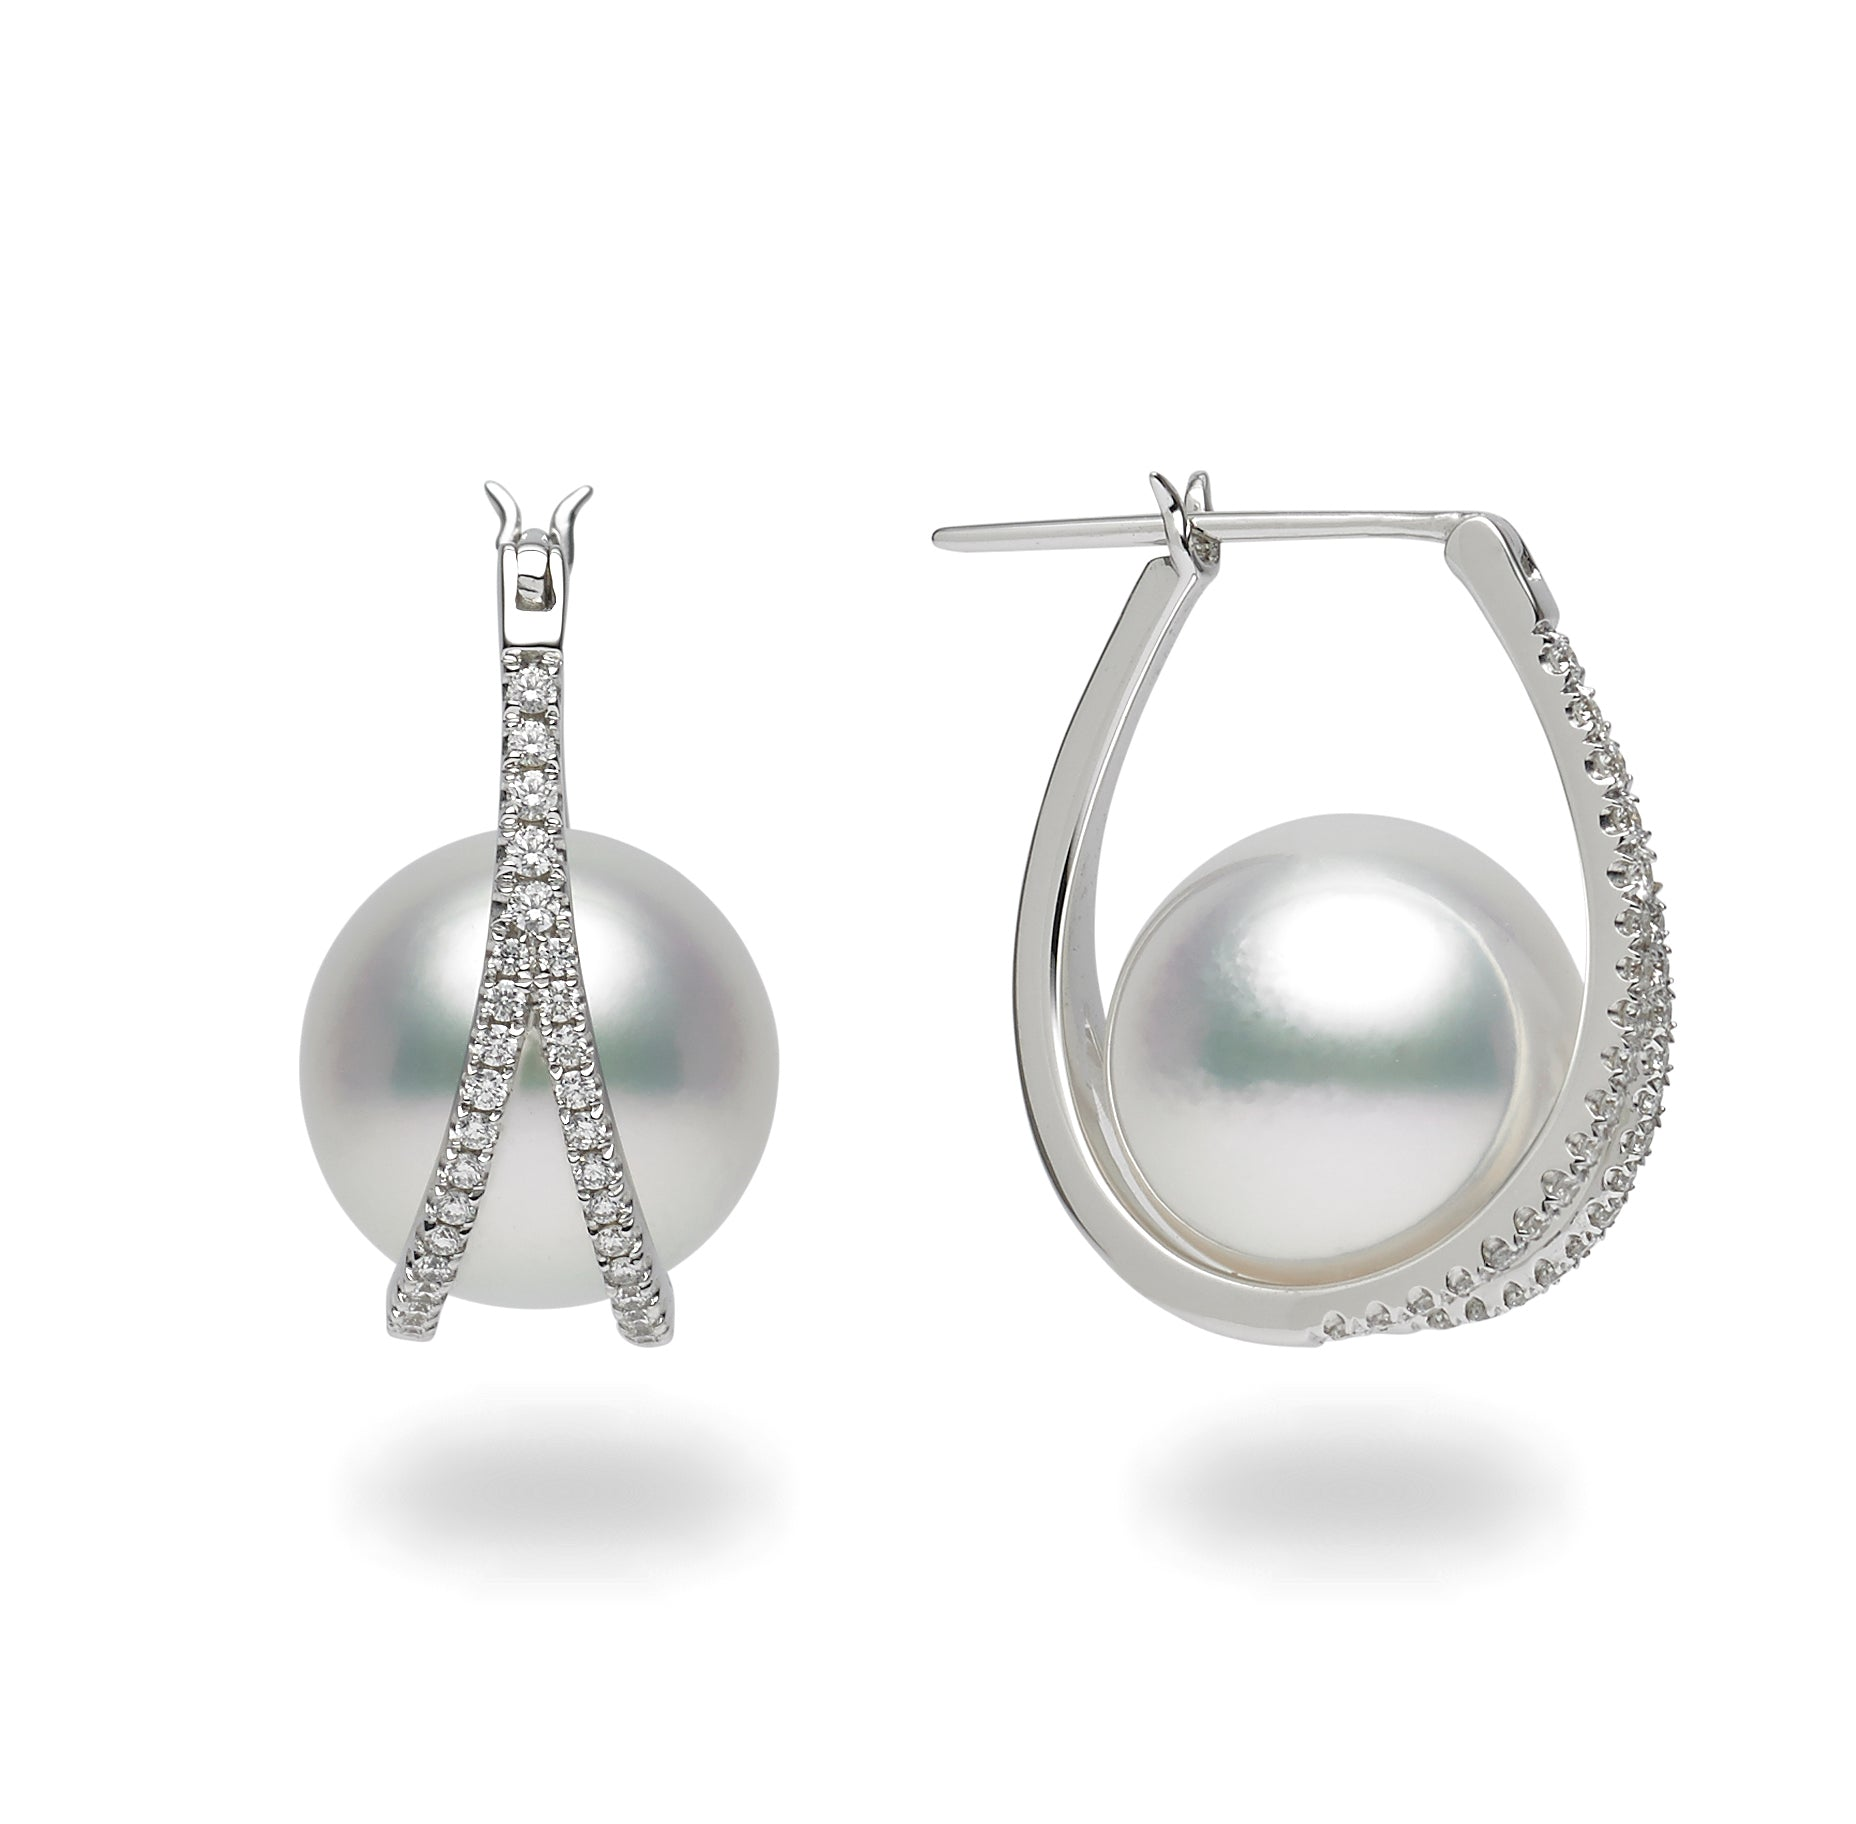 Galaxy Collection 11-12mm White South Sea Pearl Earrings